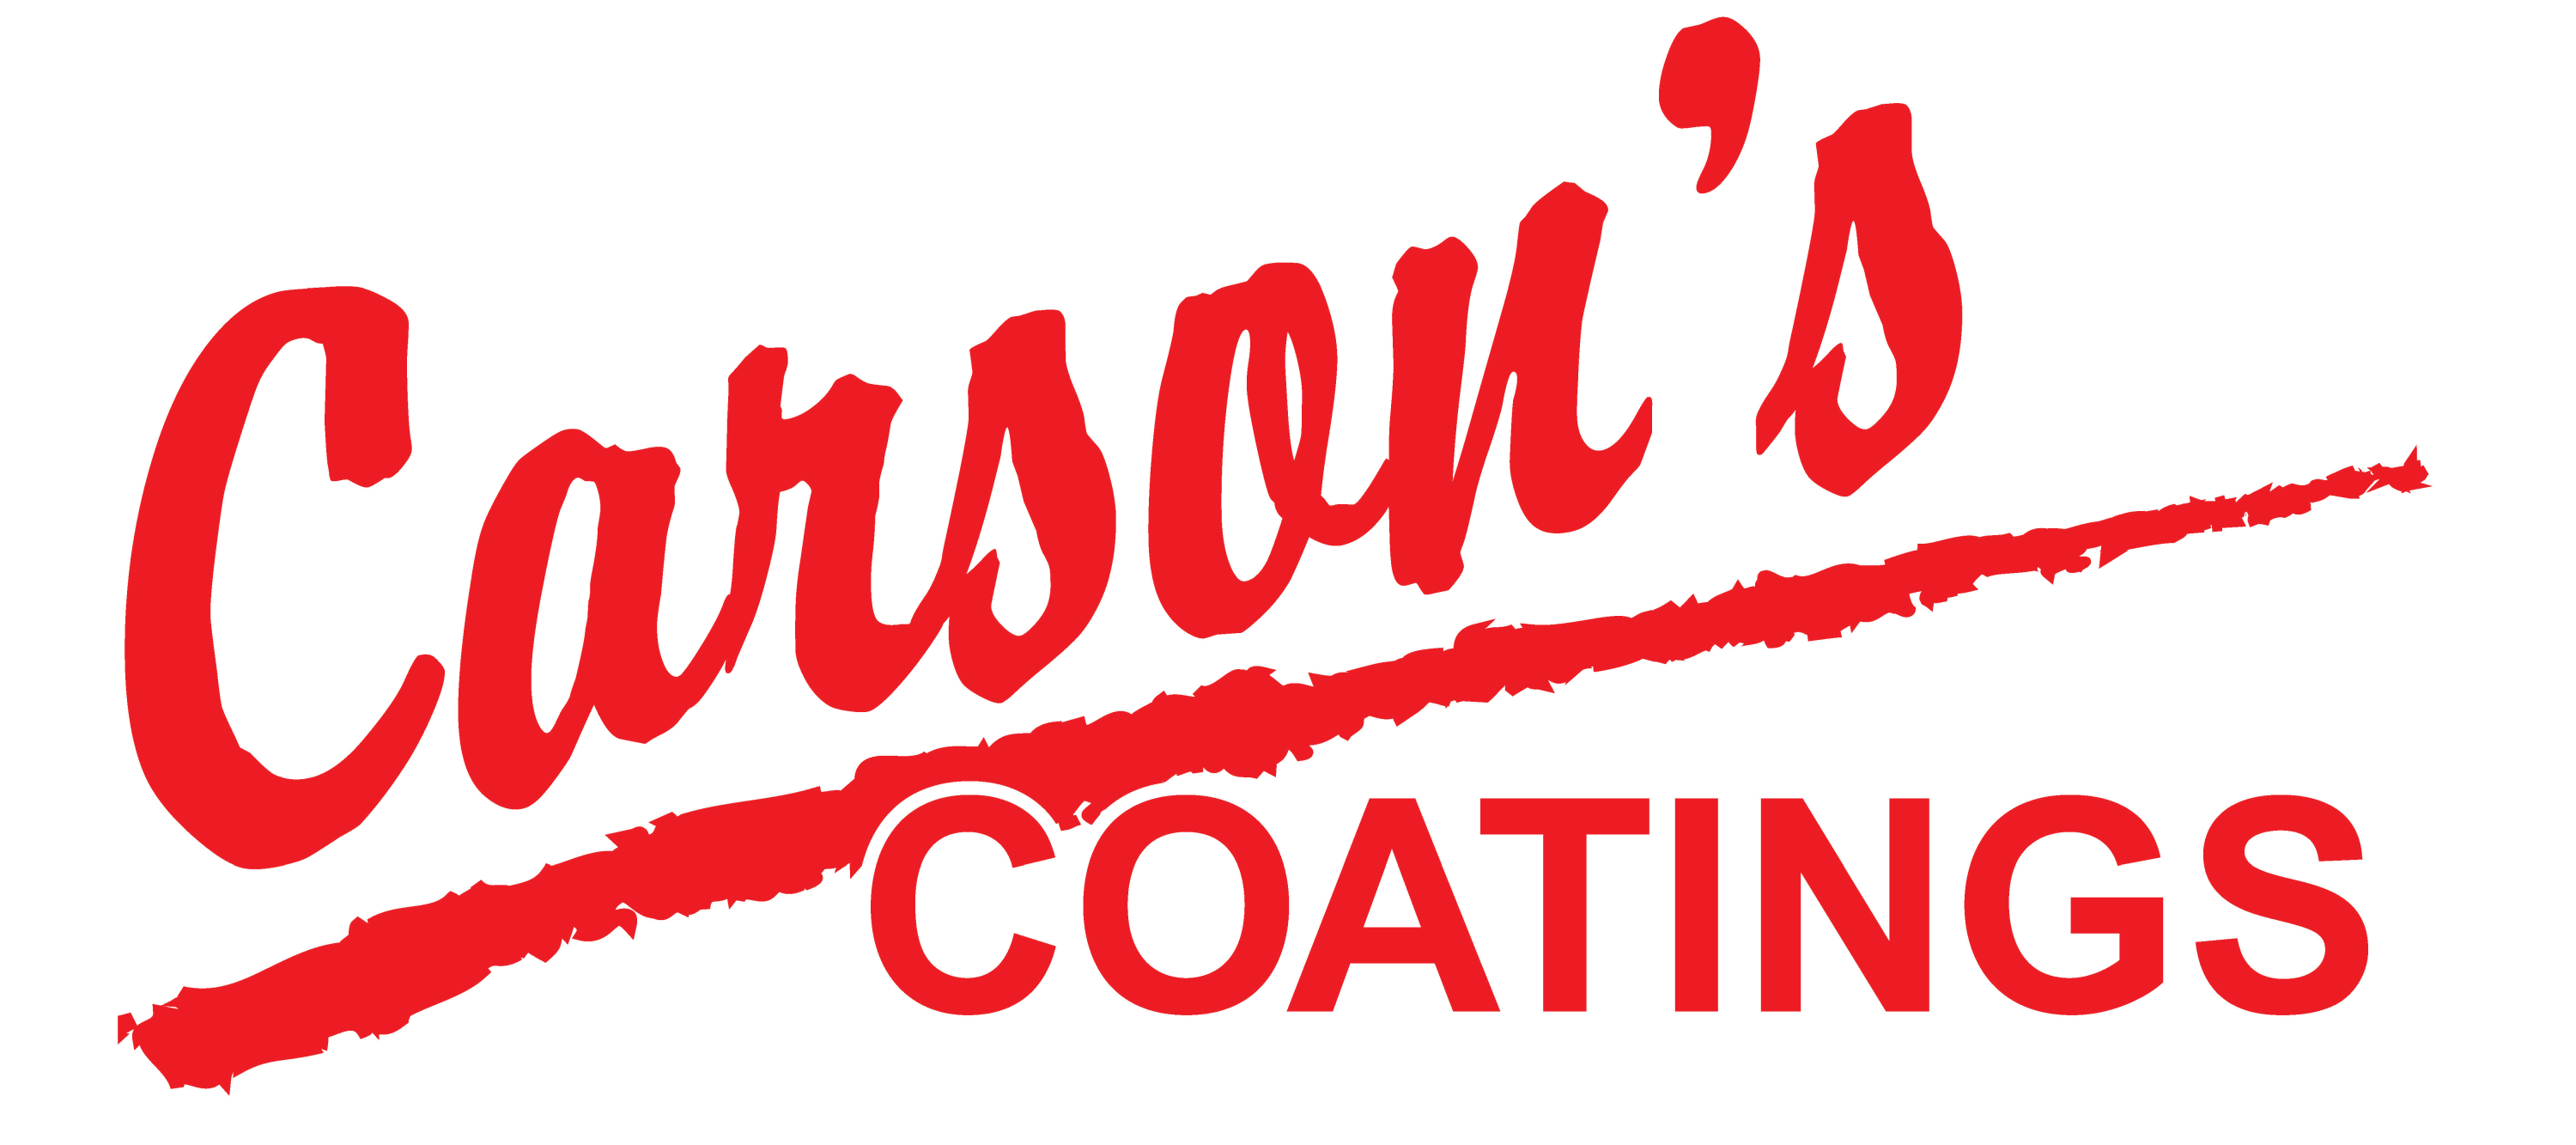 Carson's Coatings logo, white background w/red letters - 2021